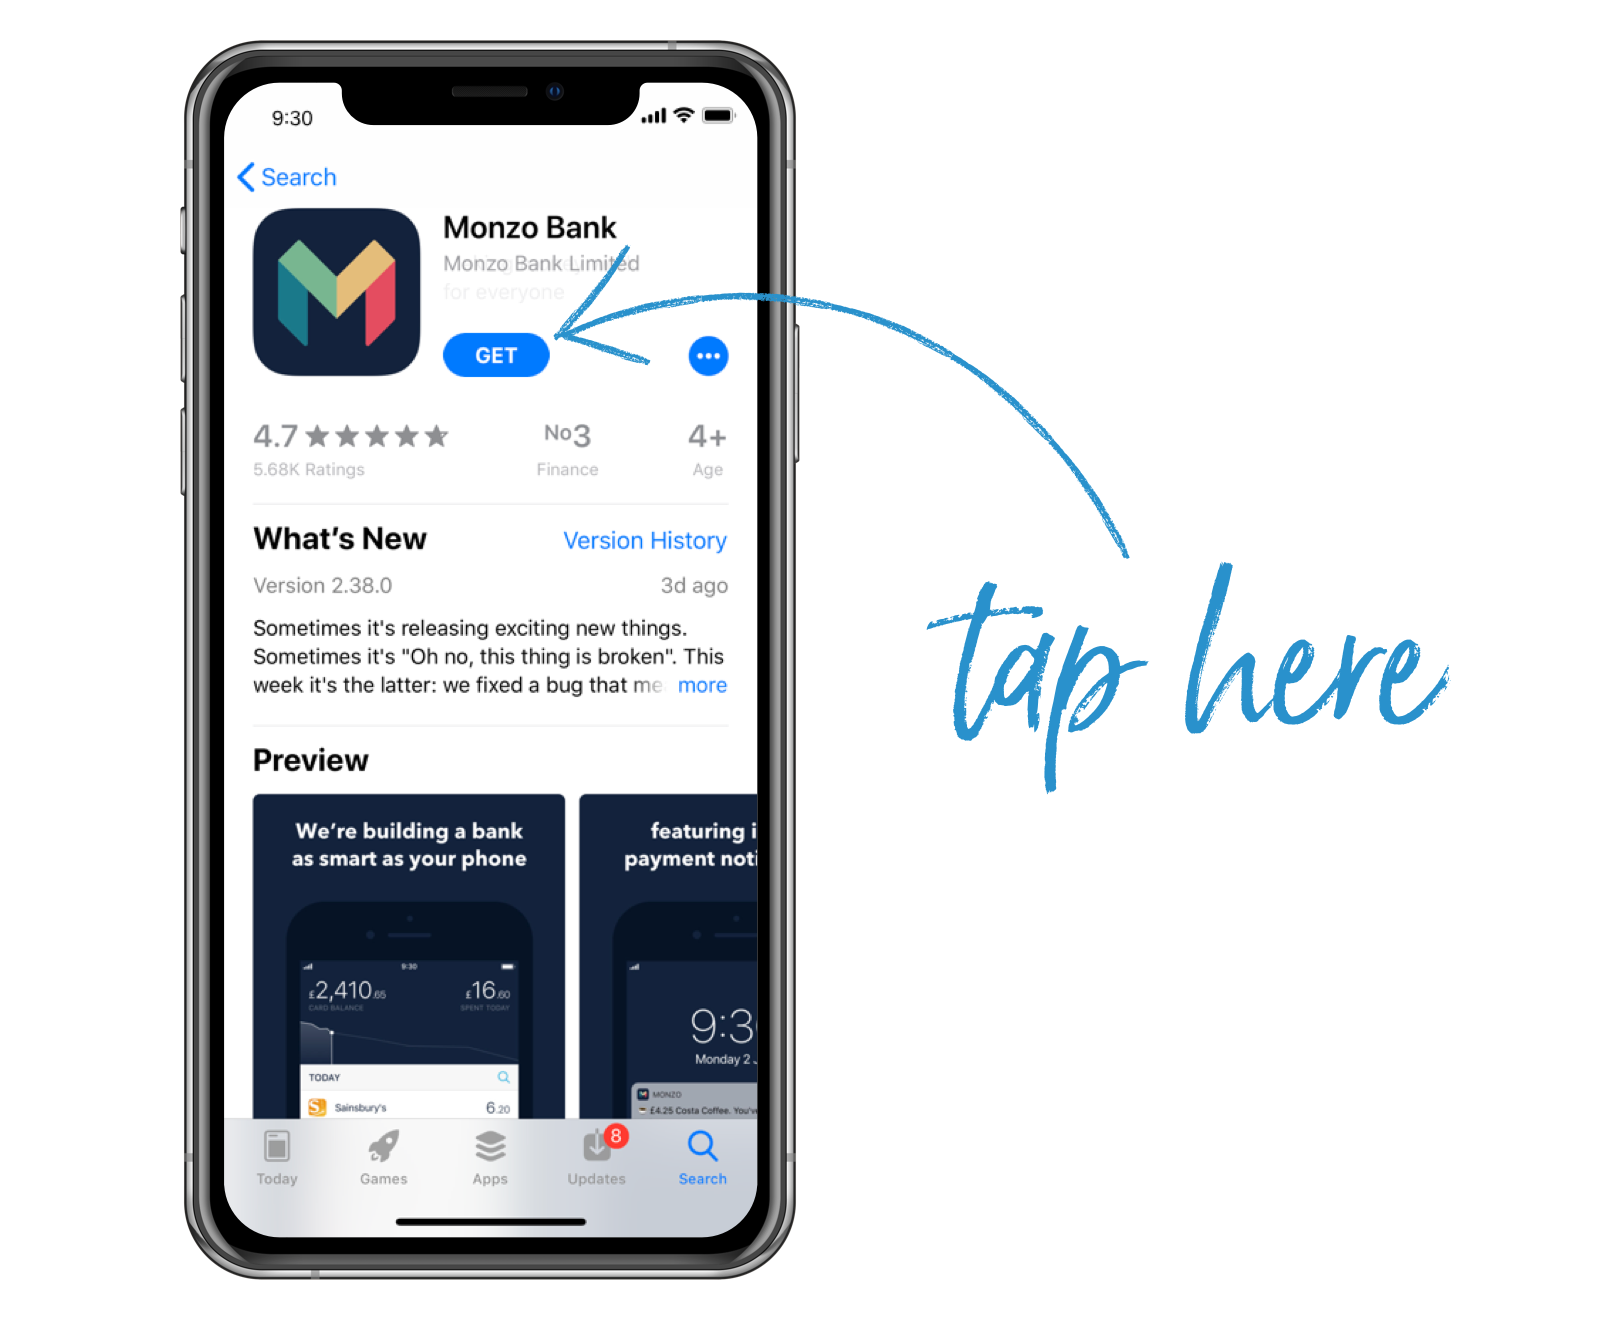 Screenshot of the Monzo app in the Google Play Store